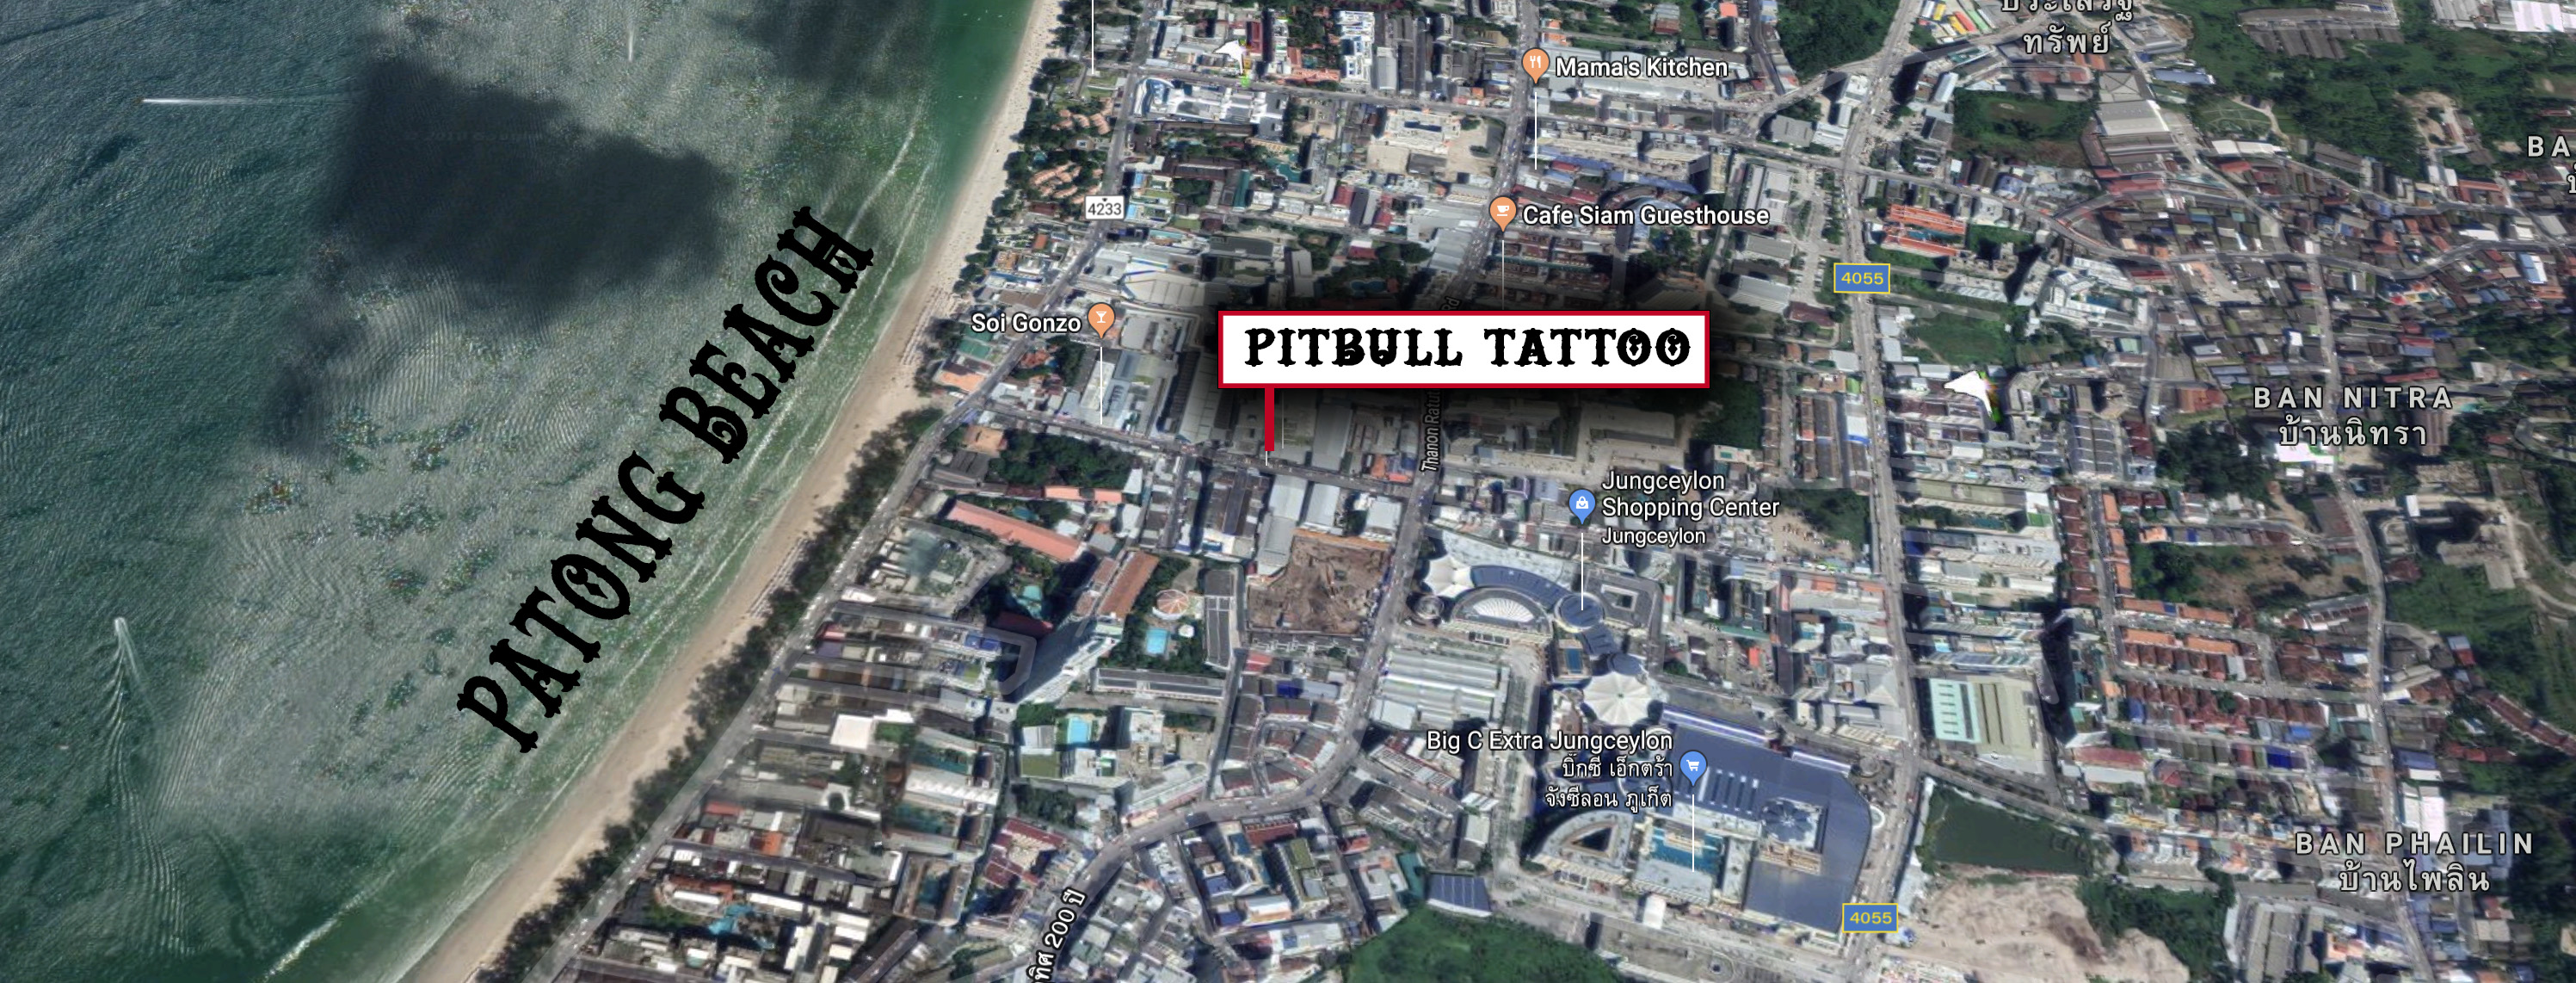 Pitbull Tattoo Phuket Studio location